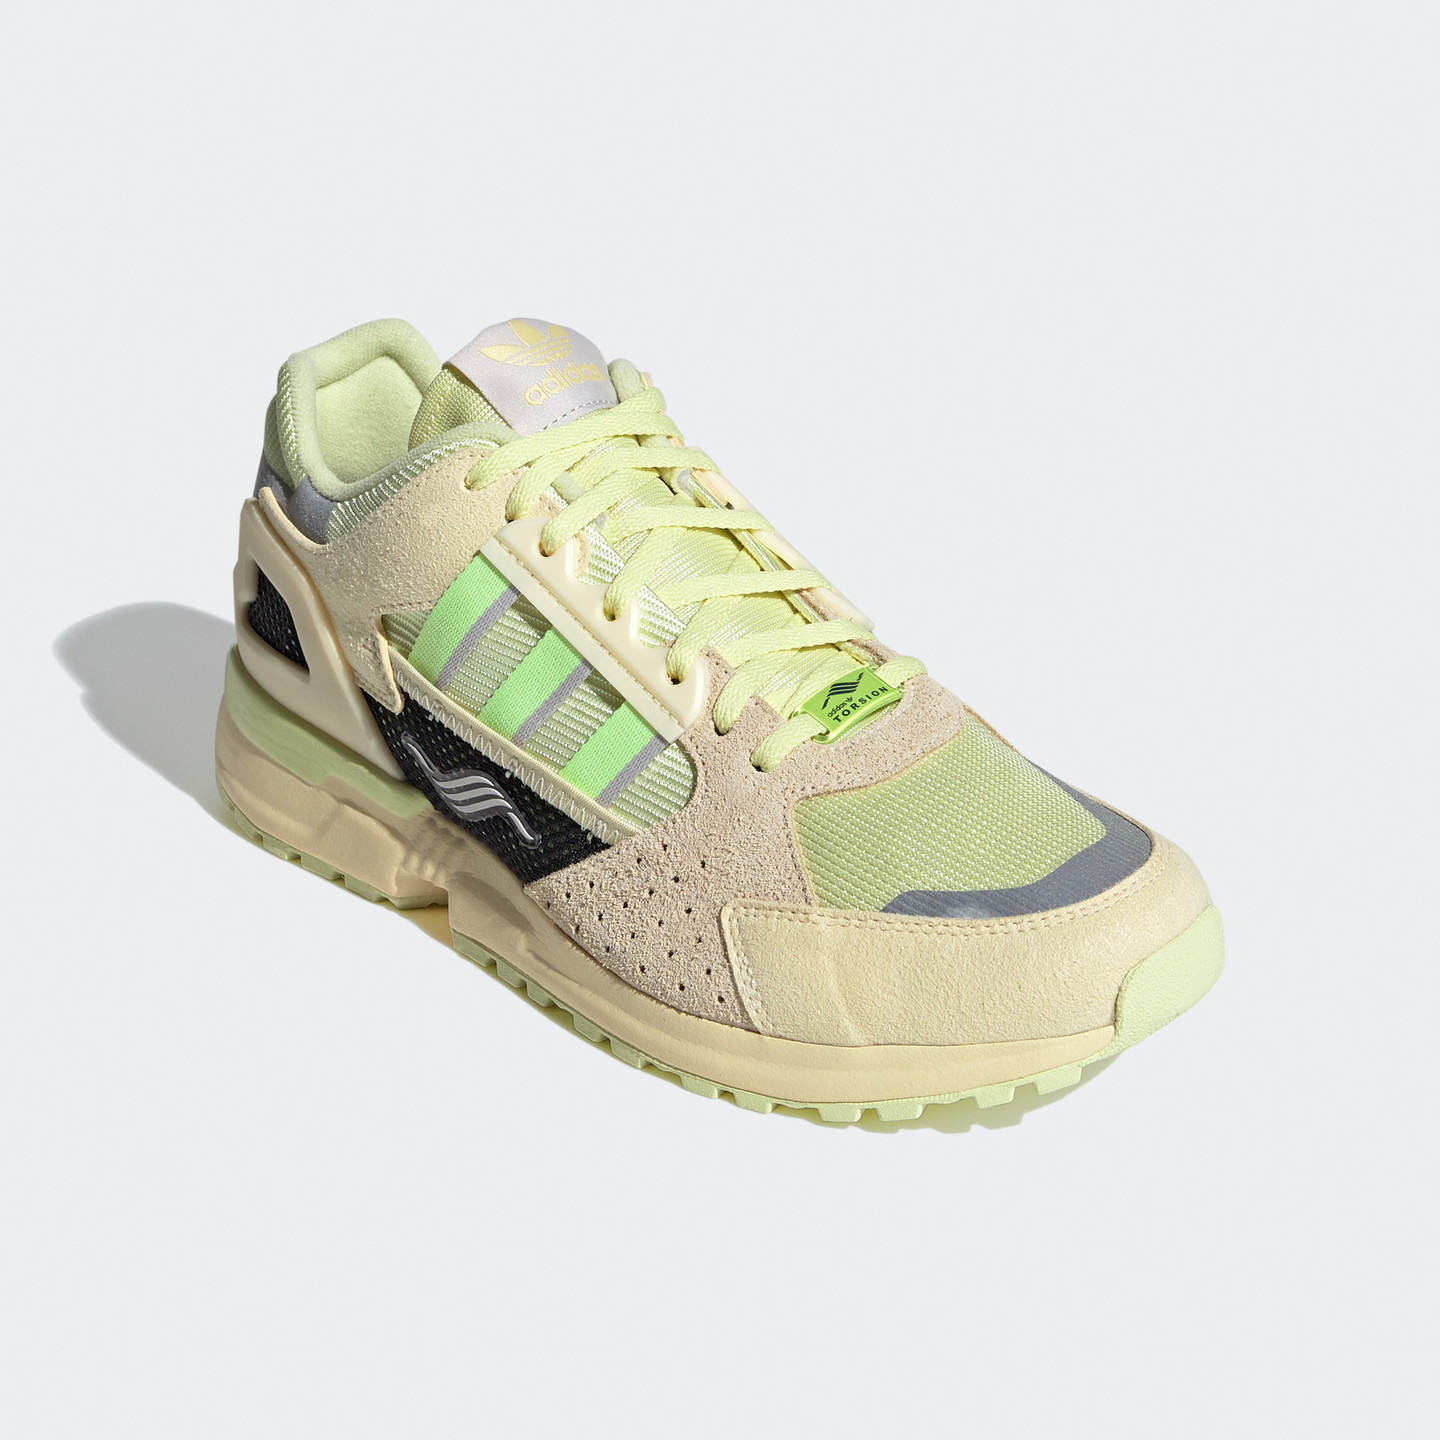 Adidas ZX 10.000 C Yellow Tint / Hi-Res Yellow / Easy Yellow FV3323